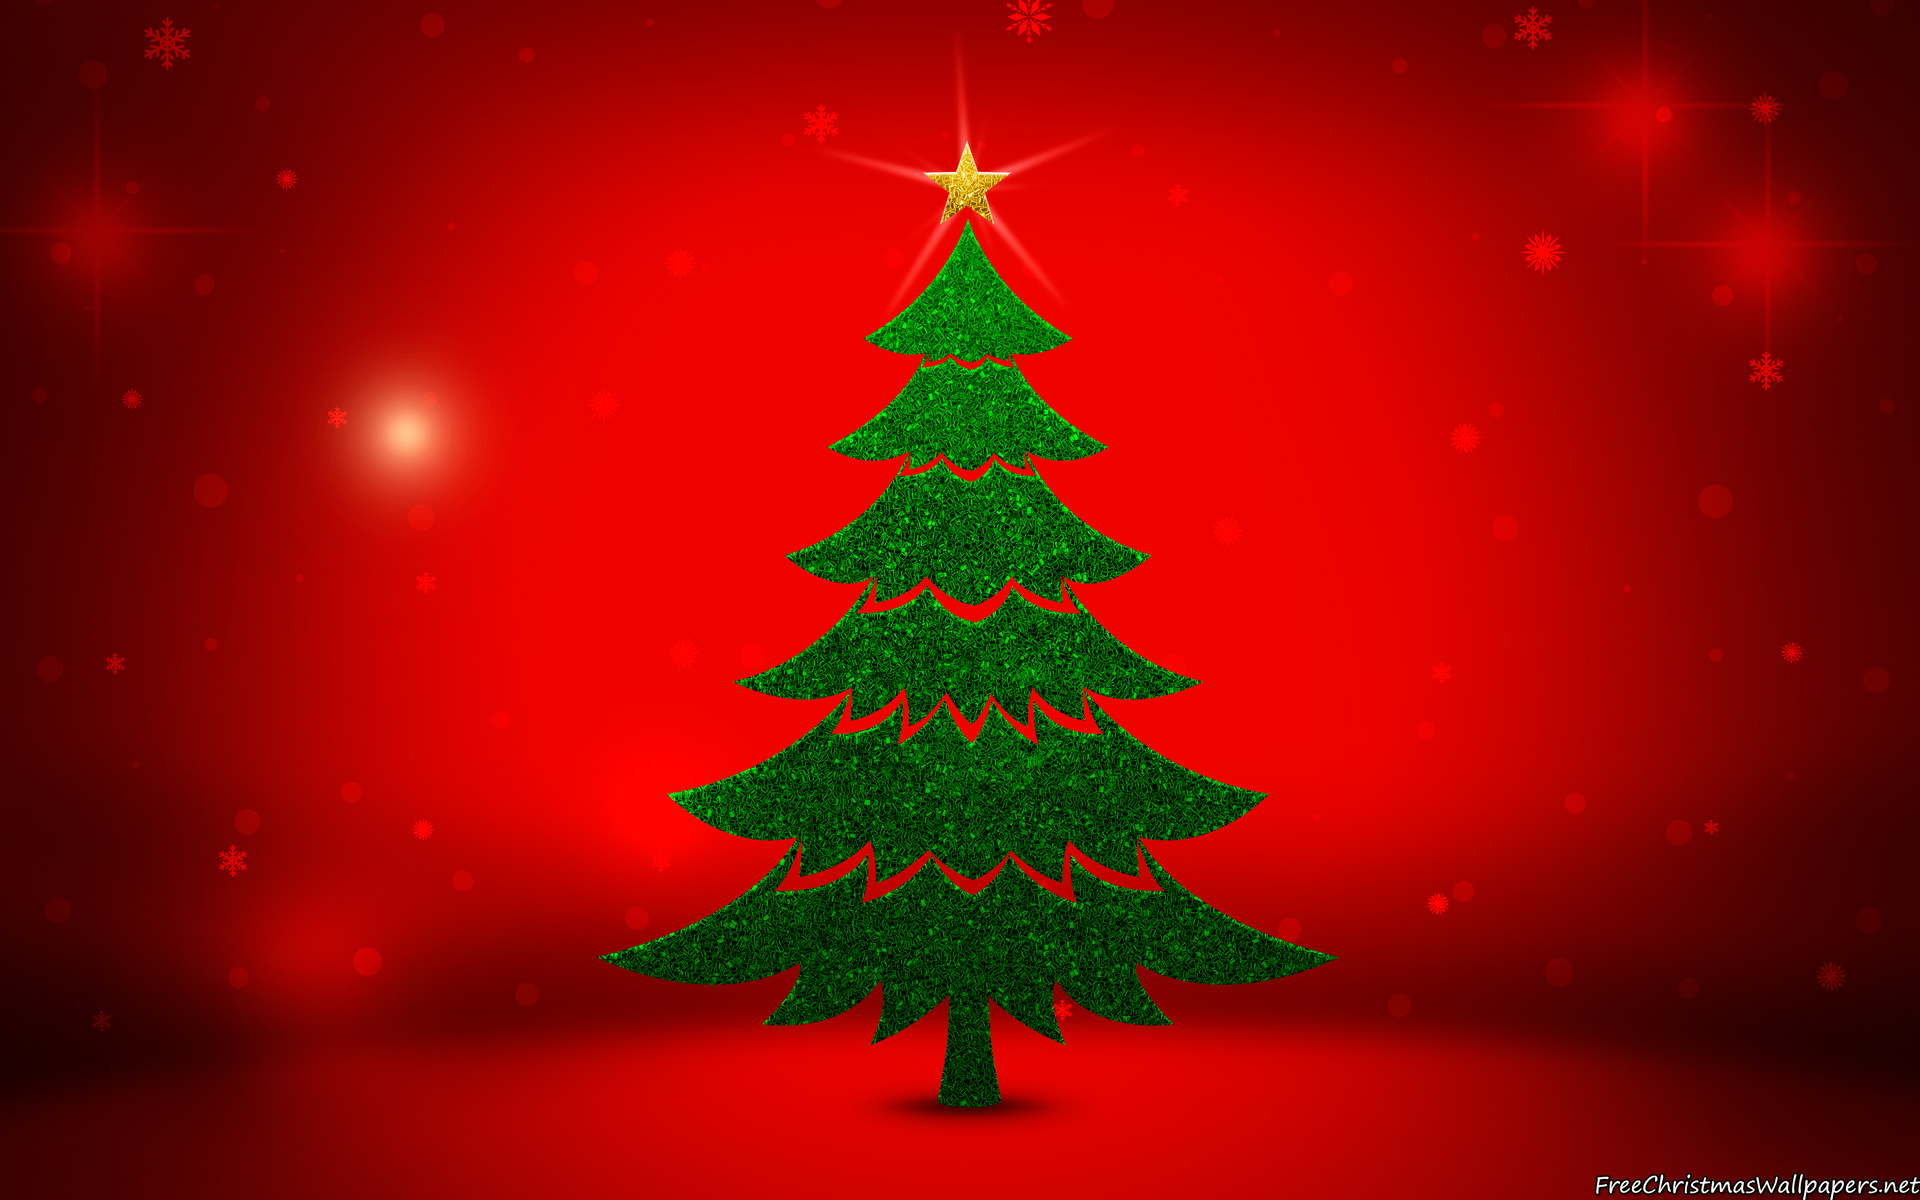 Green Christmas Tree Wallpaper Gold Christmas Tree Clipart Red